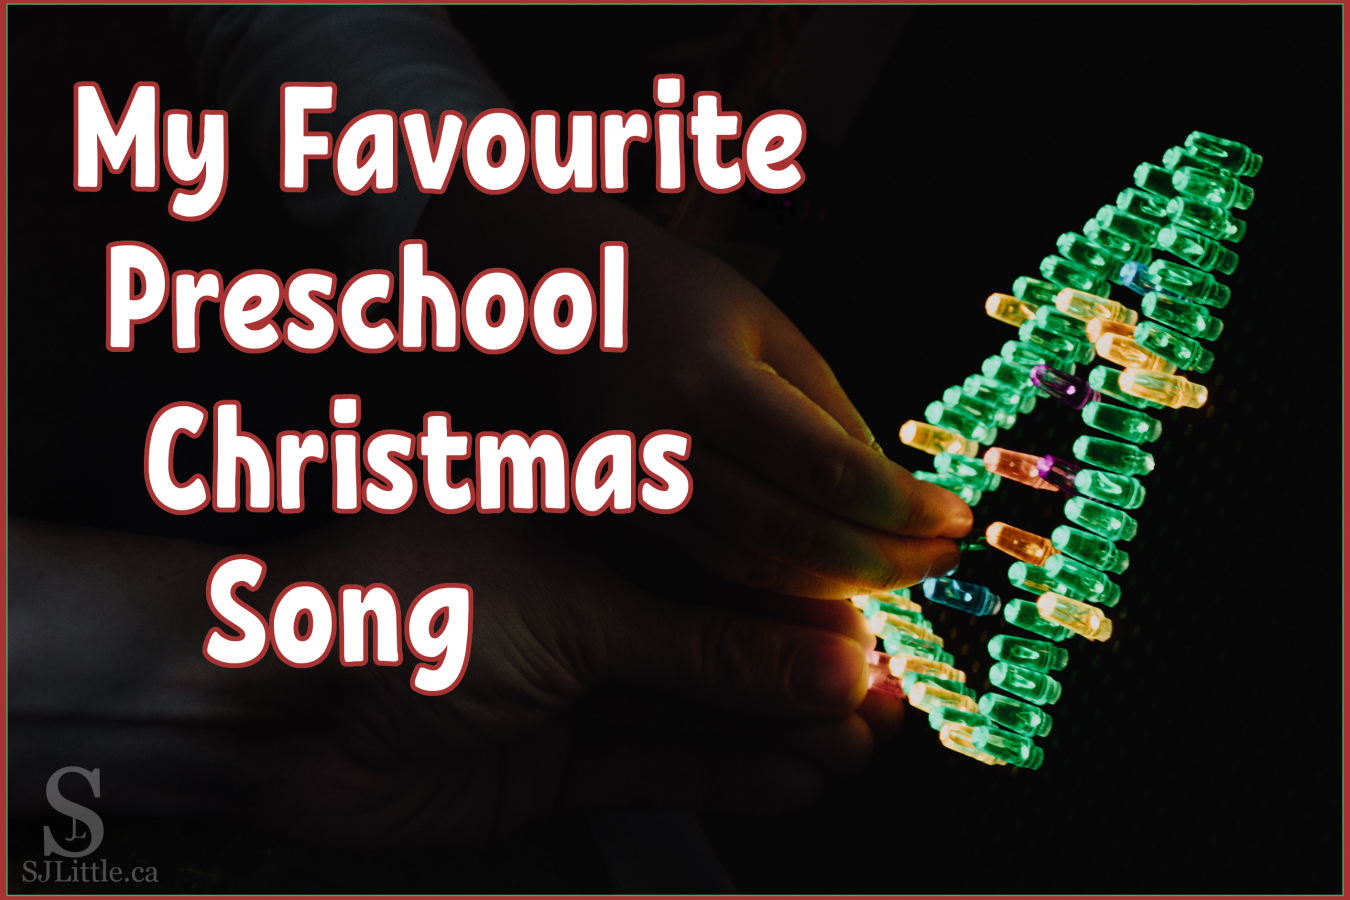 Preschool Christmas Song - Christmas tree